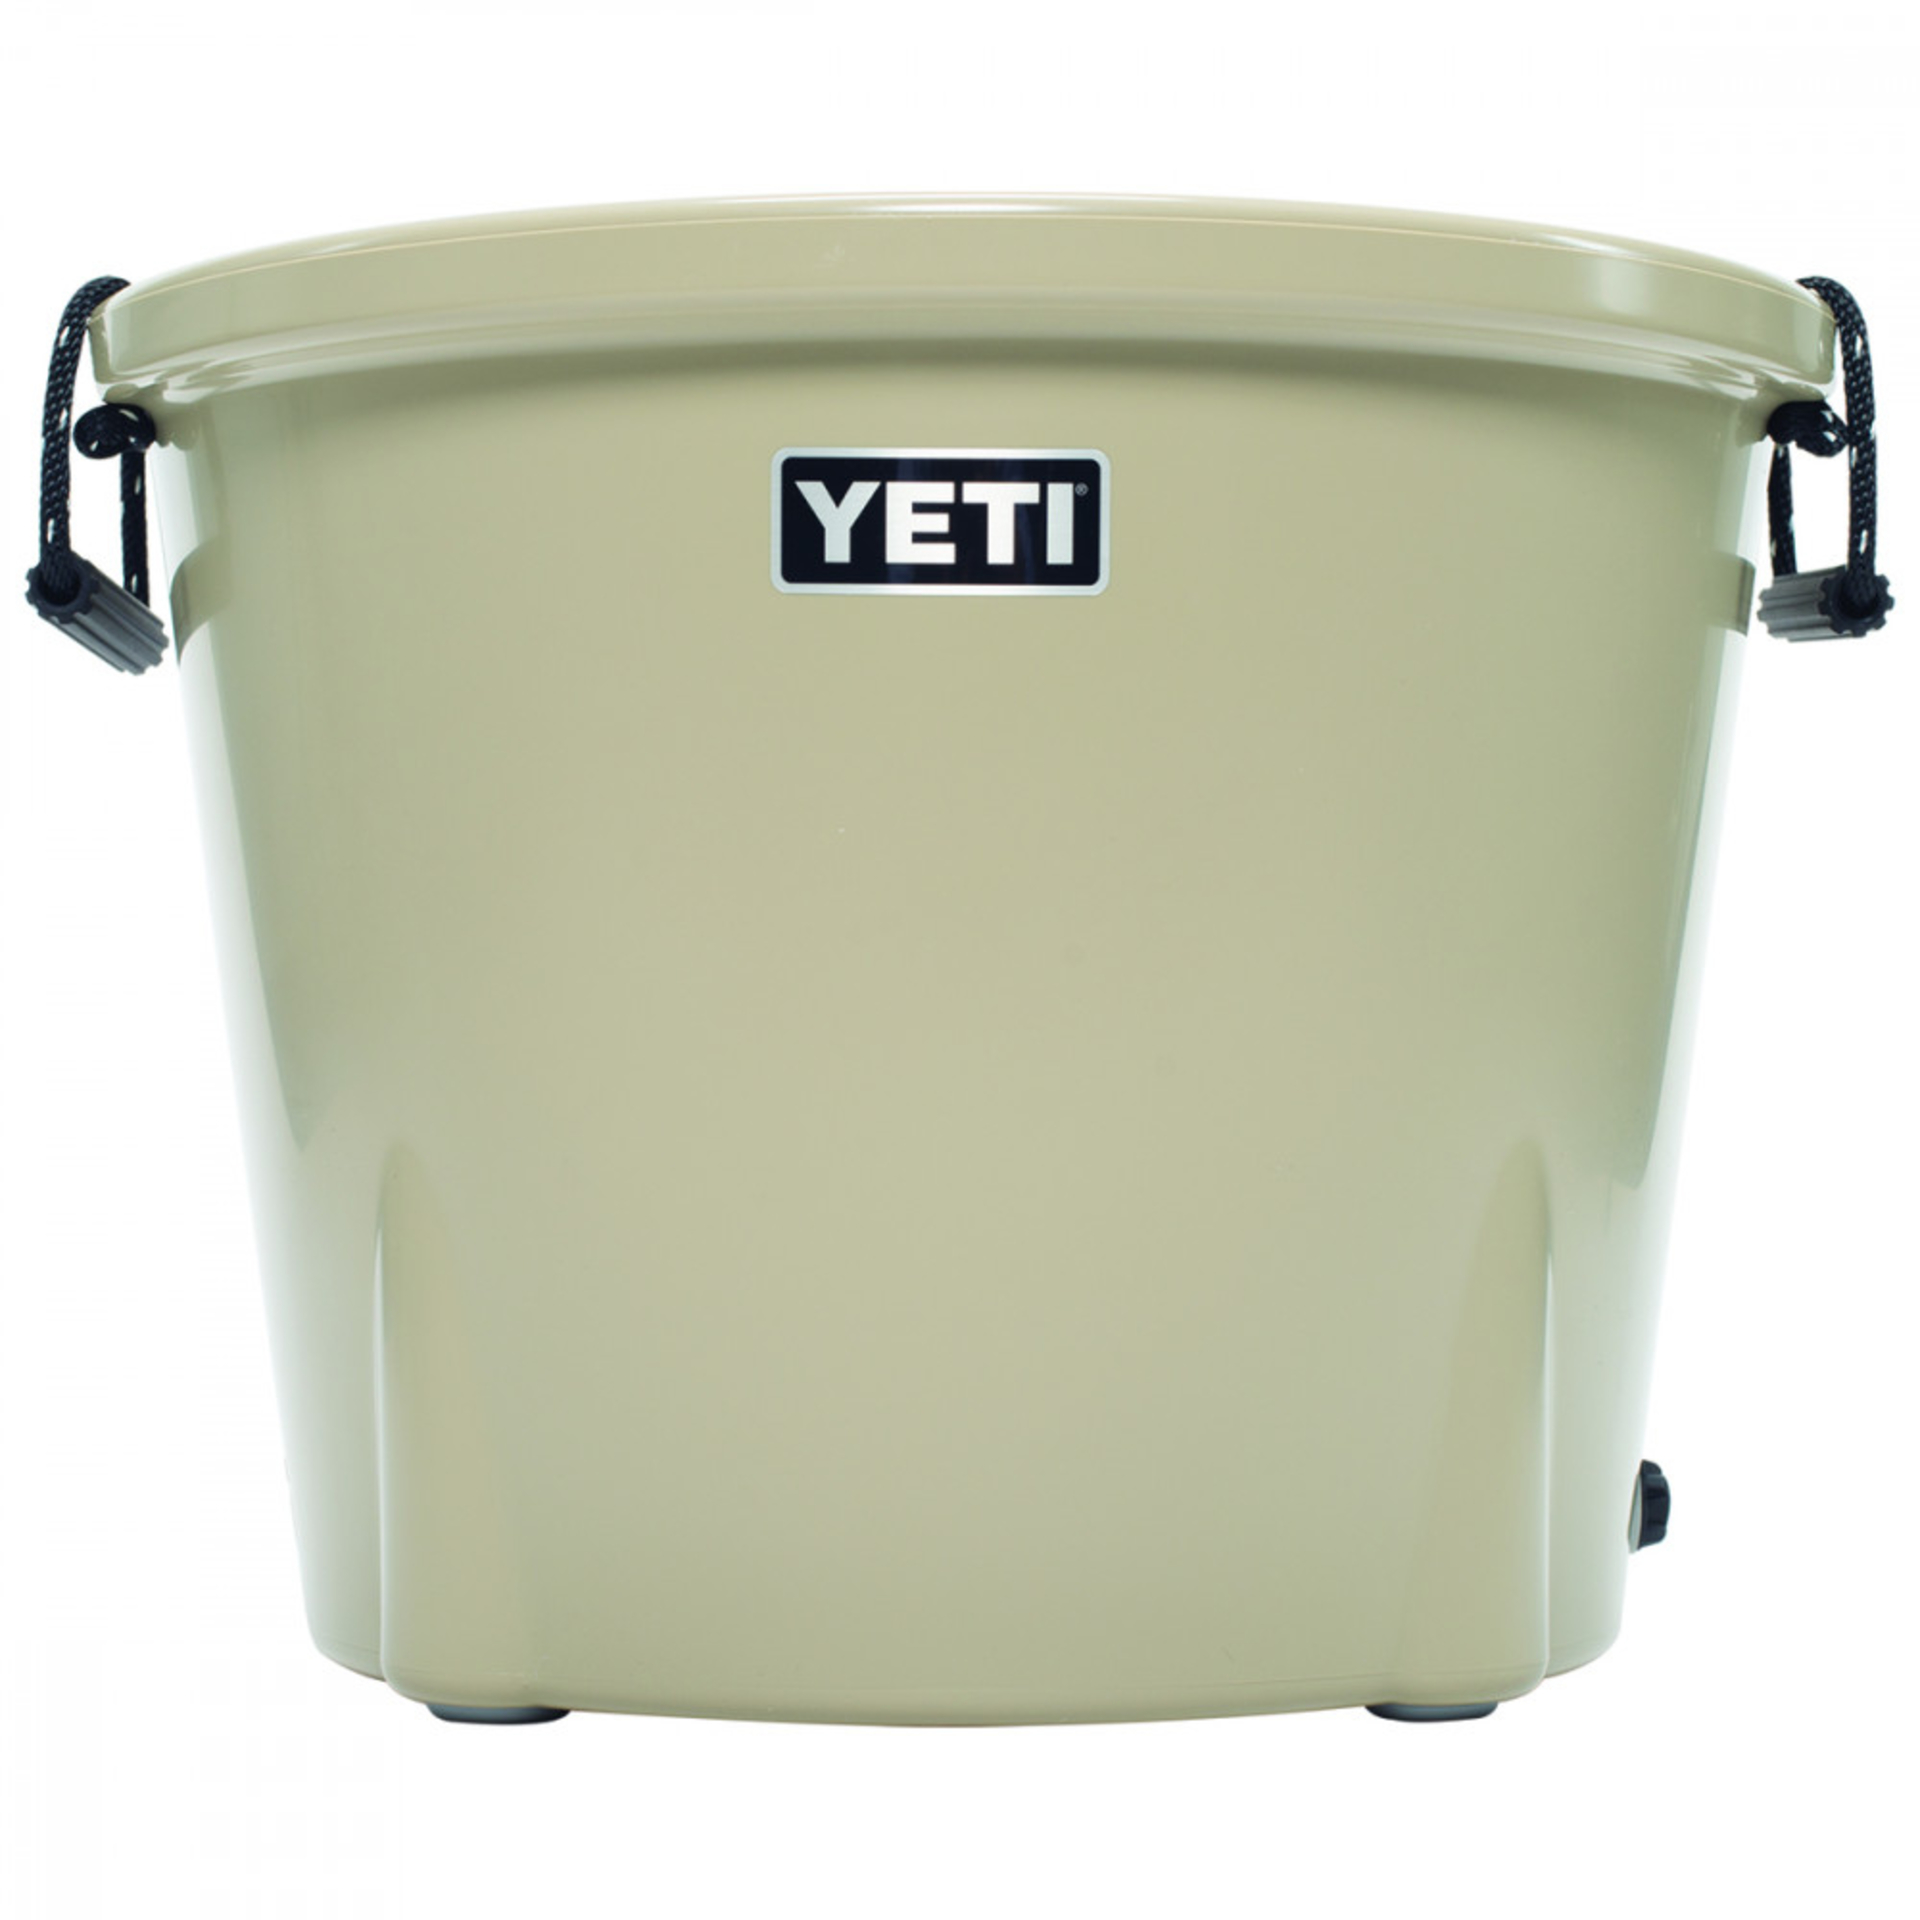 Reviews On Coolers - yeti-coolers-tank-85-desert-tan-01-base